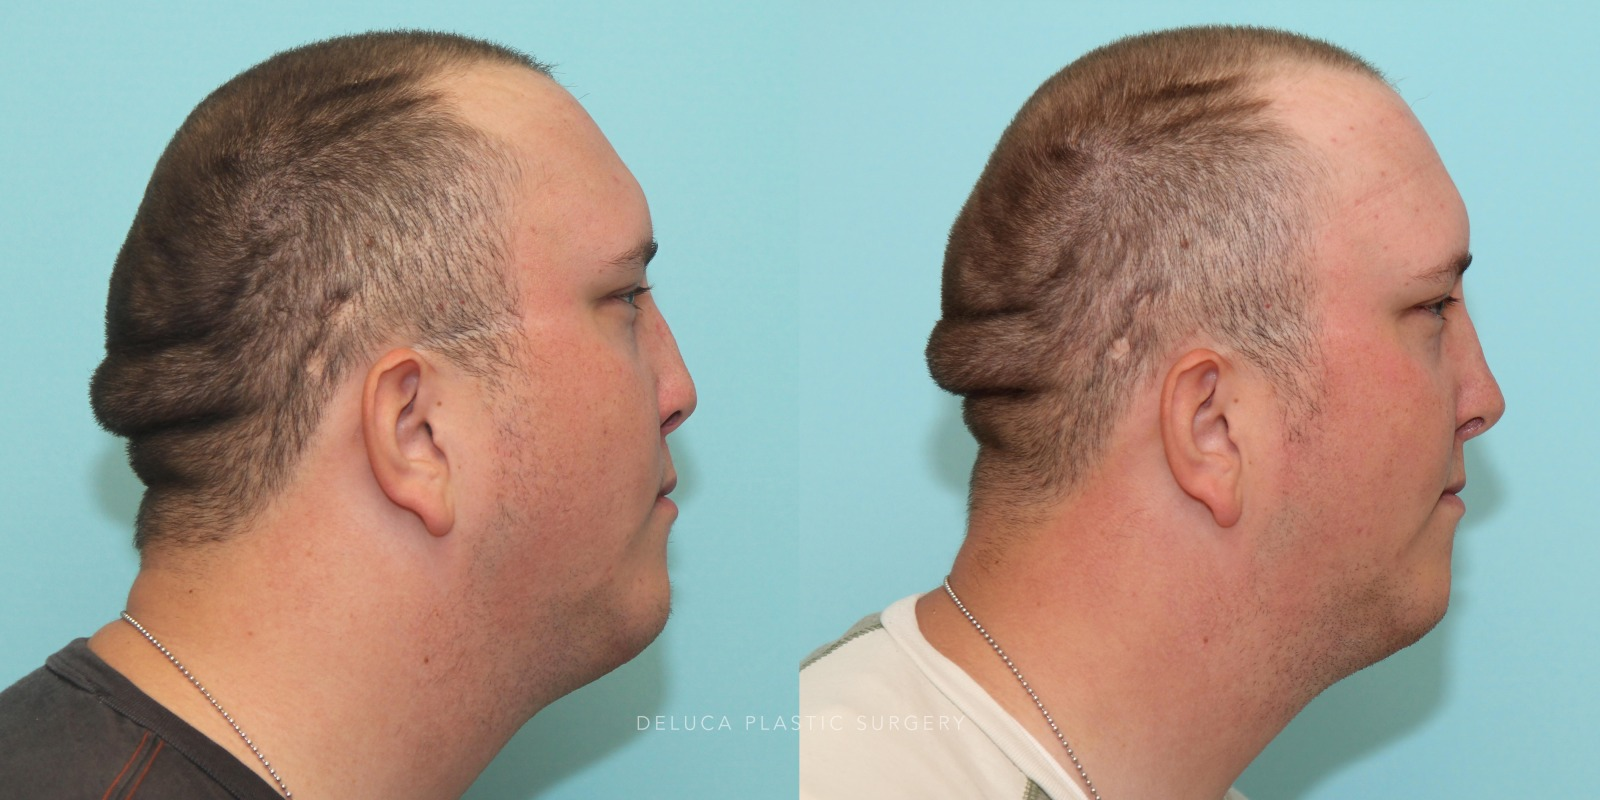 24 year old Reconstructive Rhinoplasty Using Rib Graft